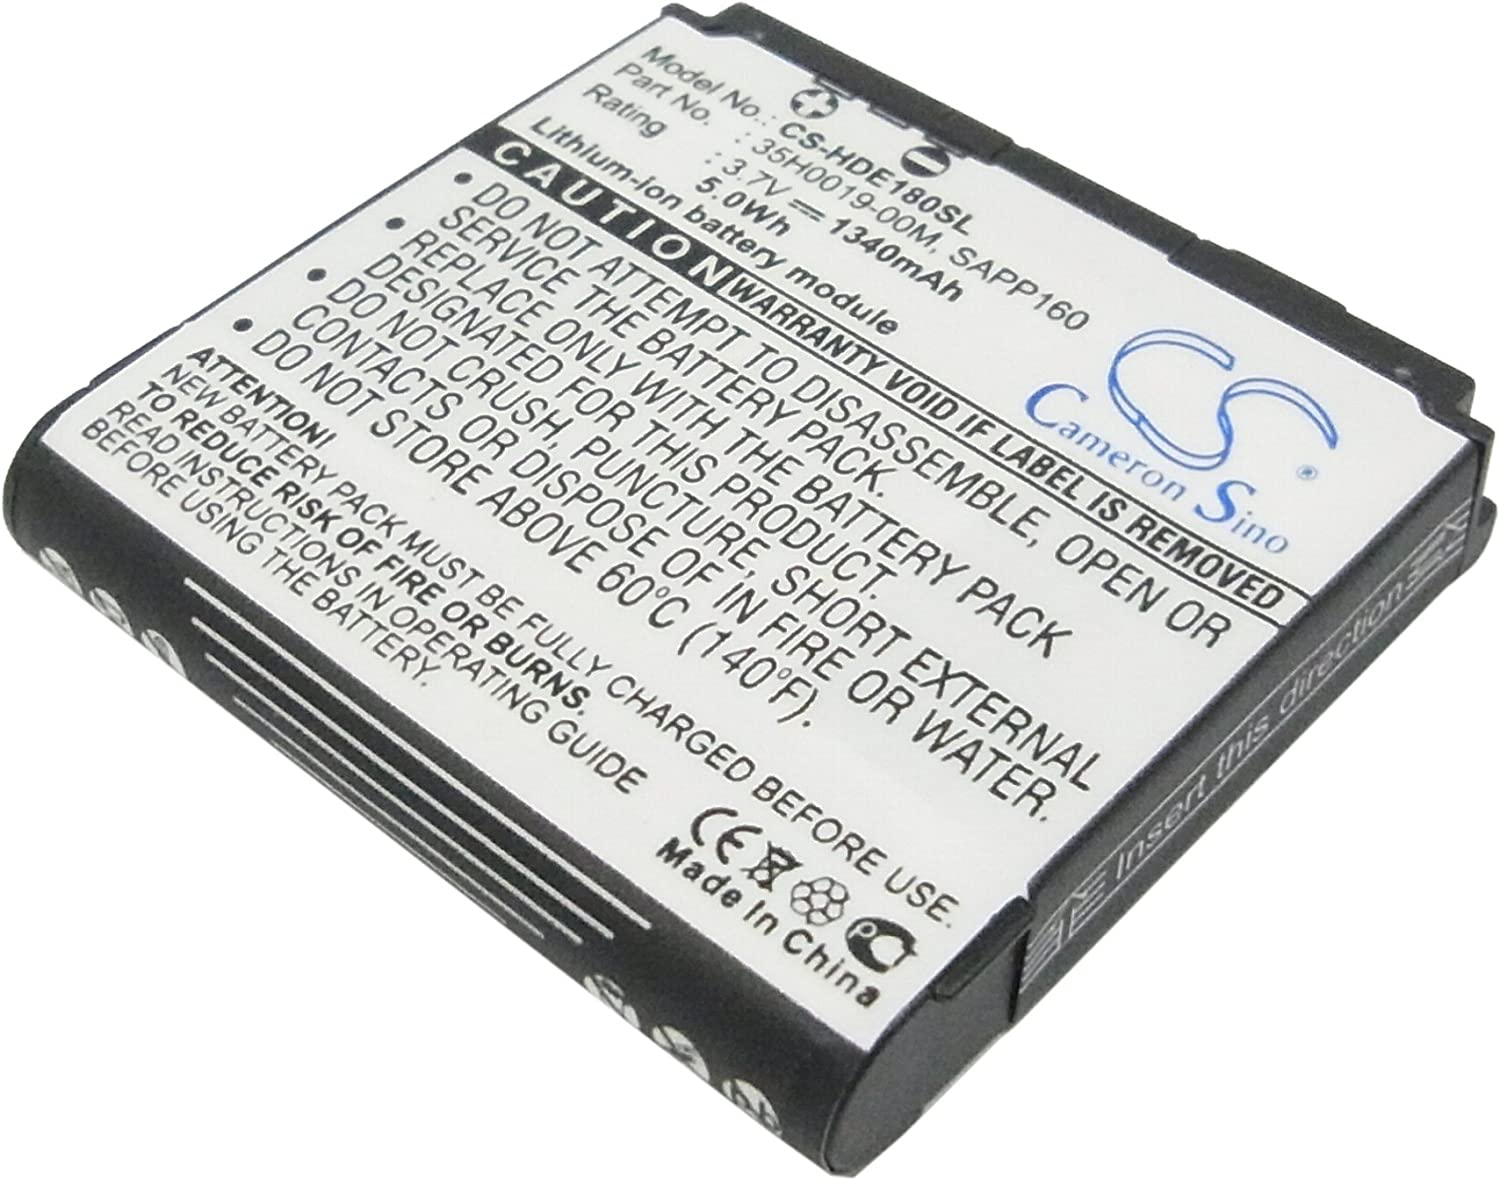 XSP 1340mAh Replacement Battery for T-Mobile Dash 3G G1 Touch MyTouch 3G VODAFONE G2 DOPOD A6188 Part NO 35H0019-00M, BA S350, SAPP160 Parts Battery Batteries